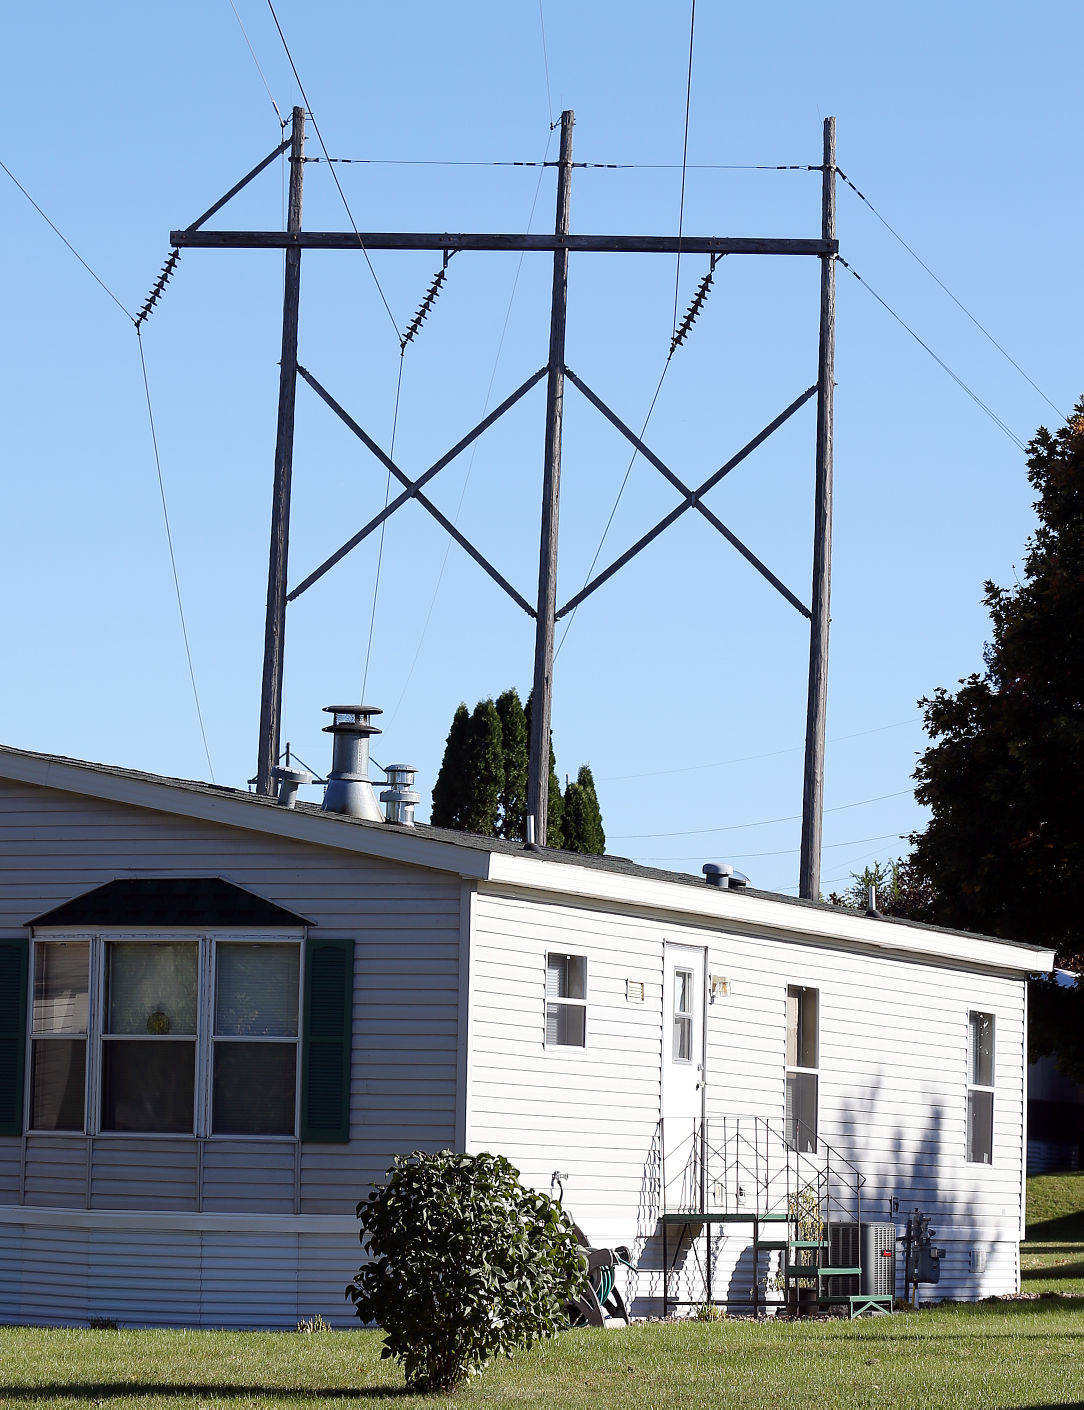 H Frame Transmission Power Pole : Residents worried by plans to rebuild transmission line